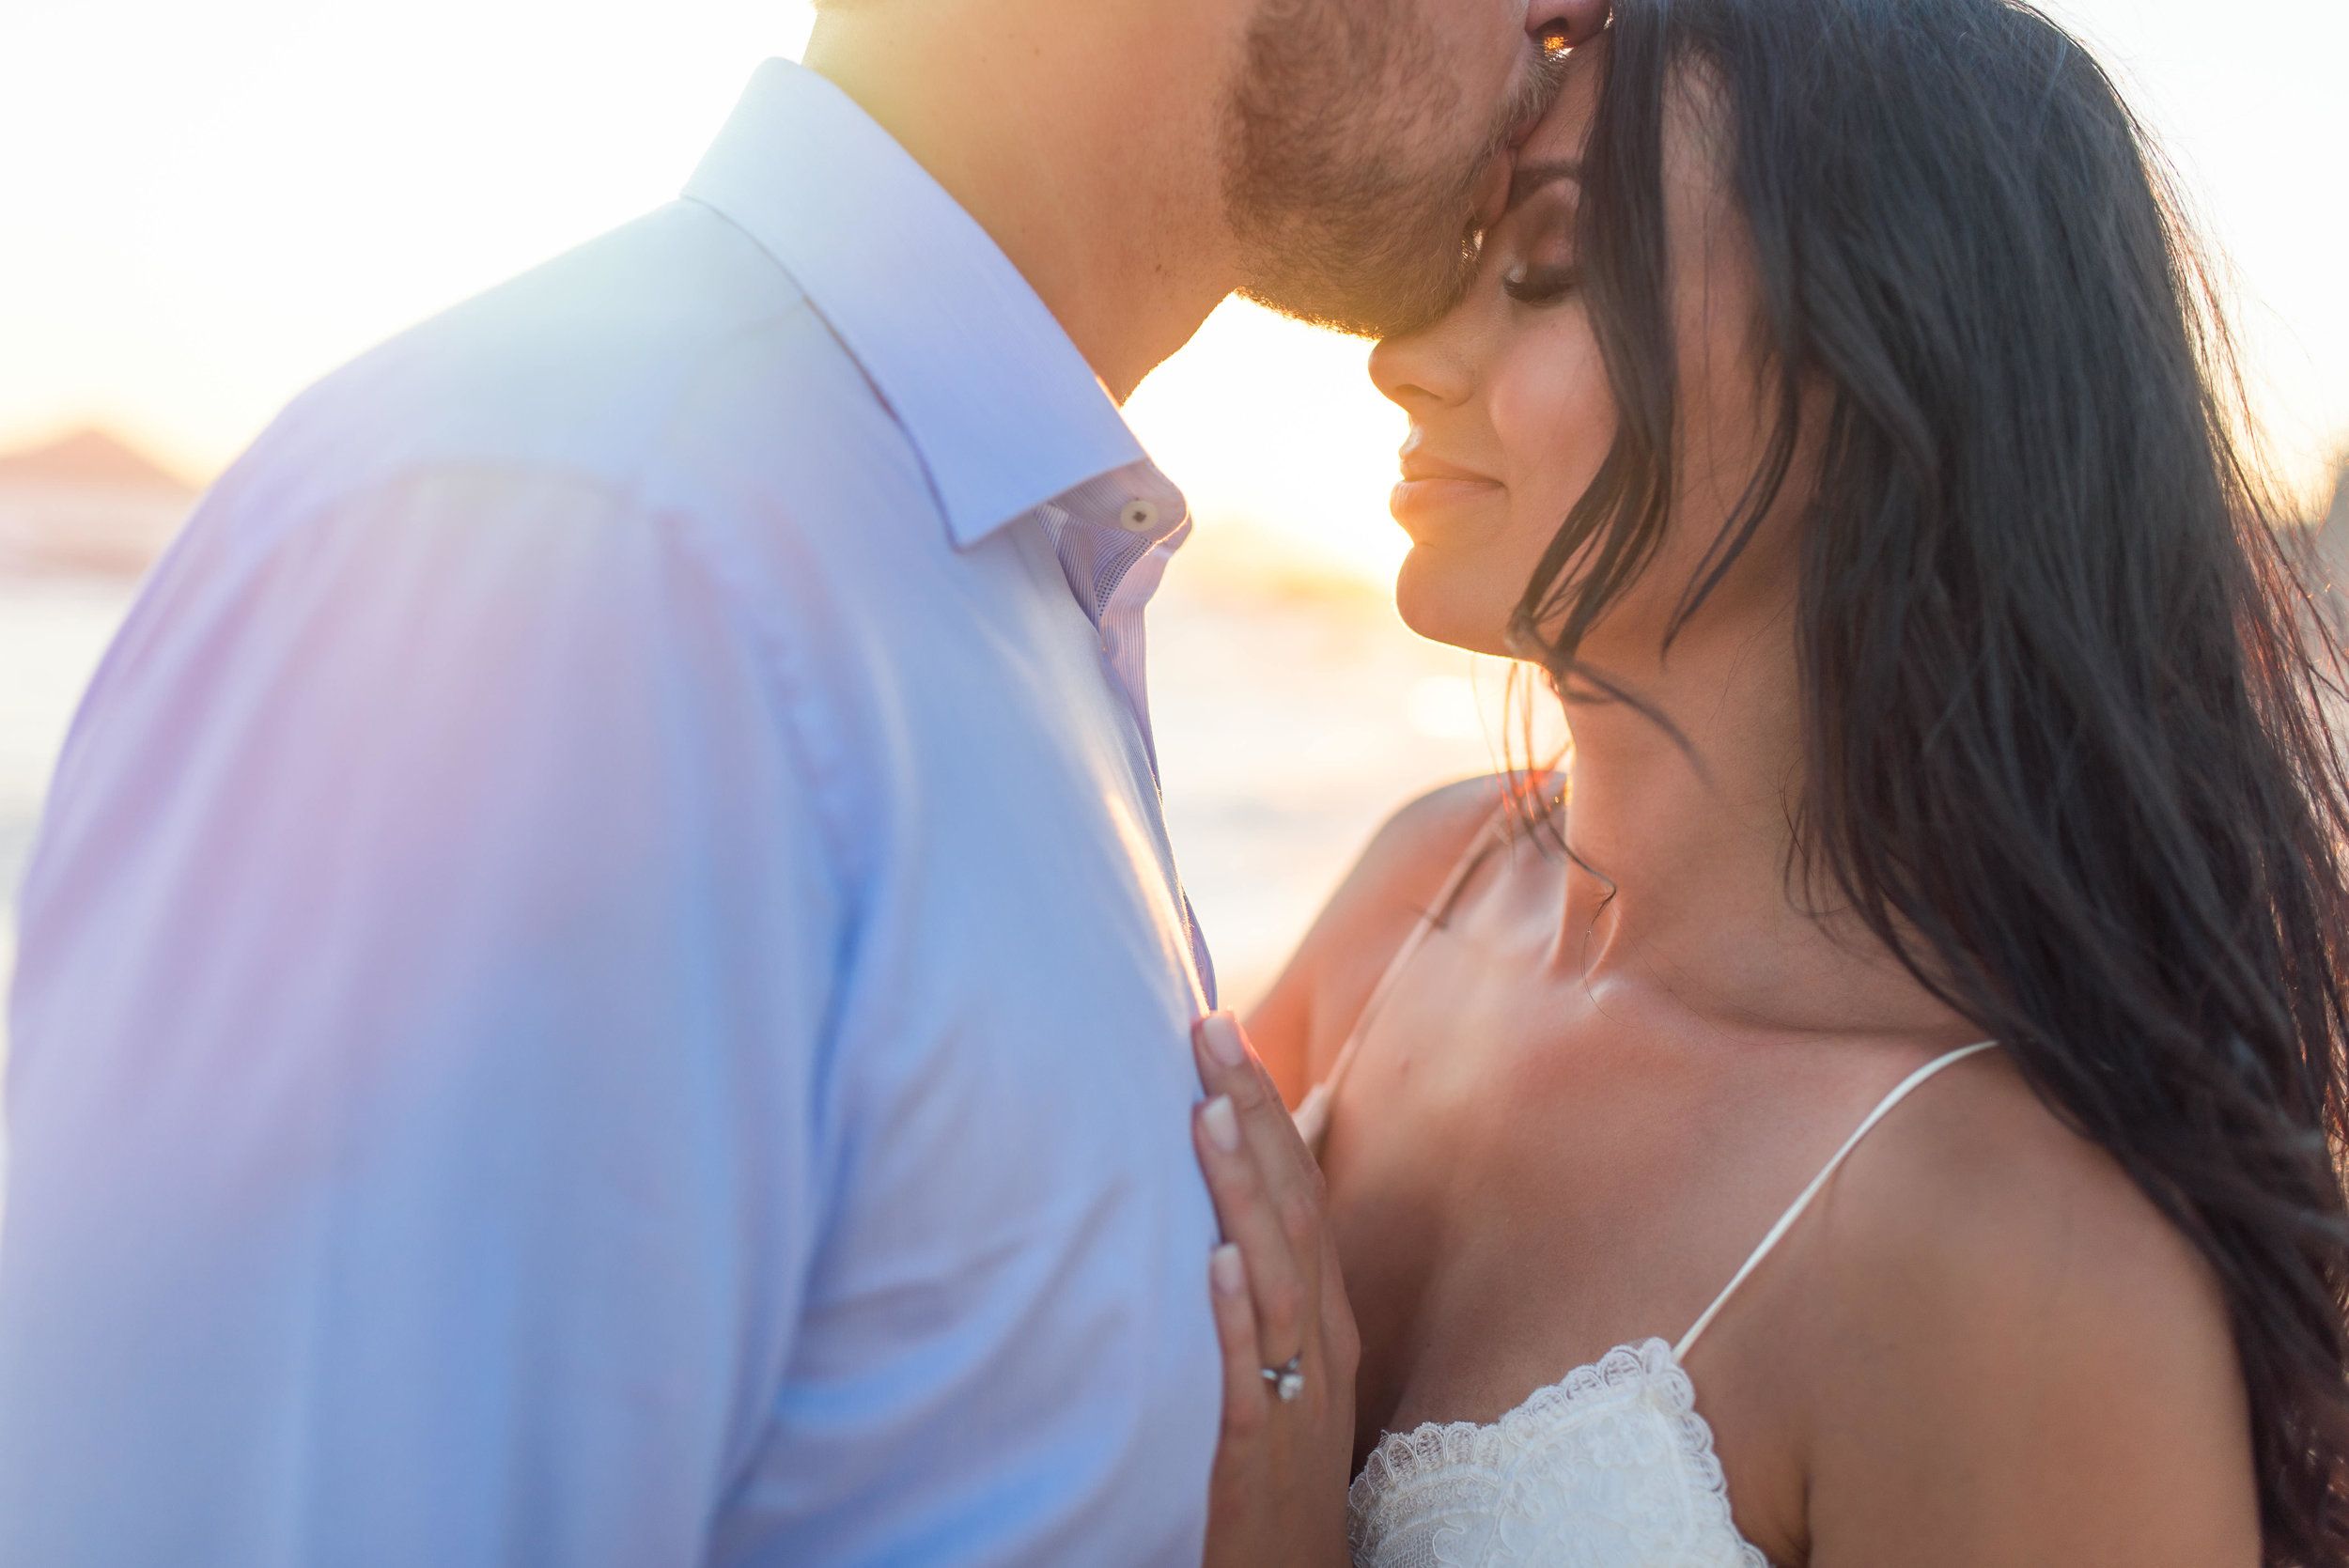 Couple kisses at the beach during the photo shooting with talented GVphotographer. Sunset is right behind them